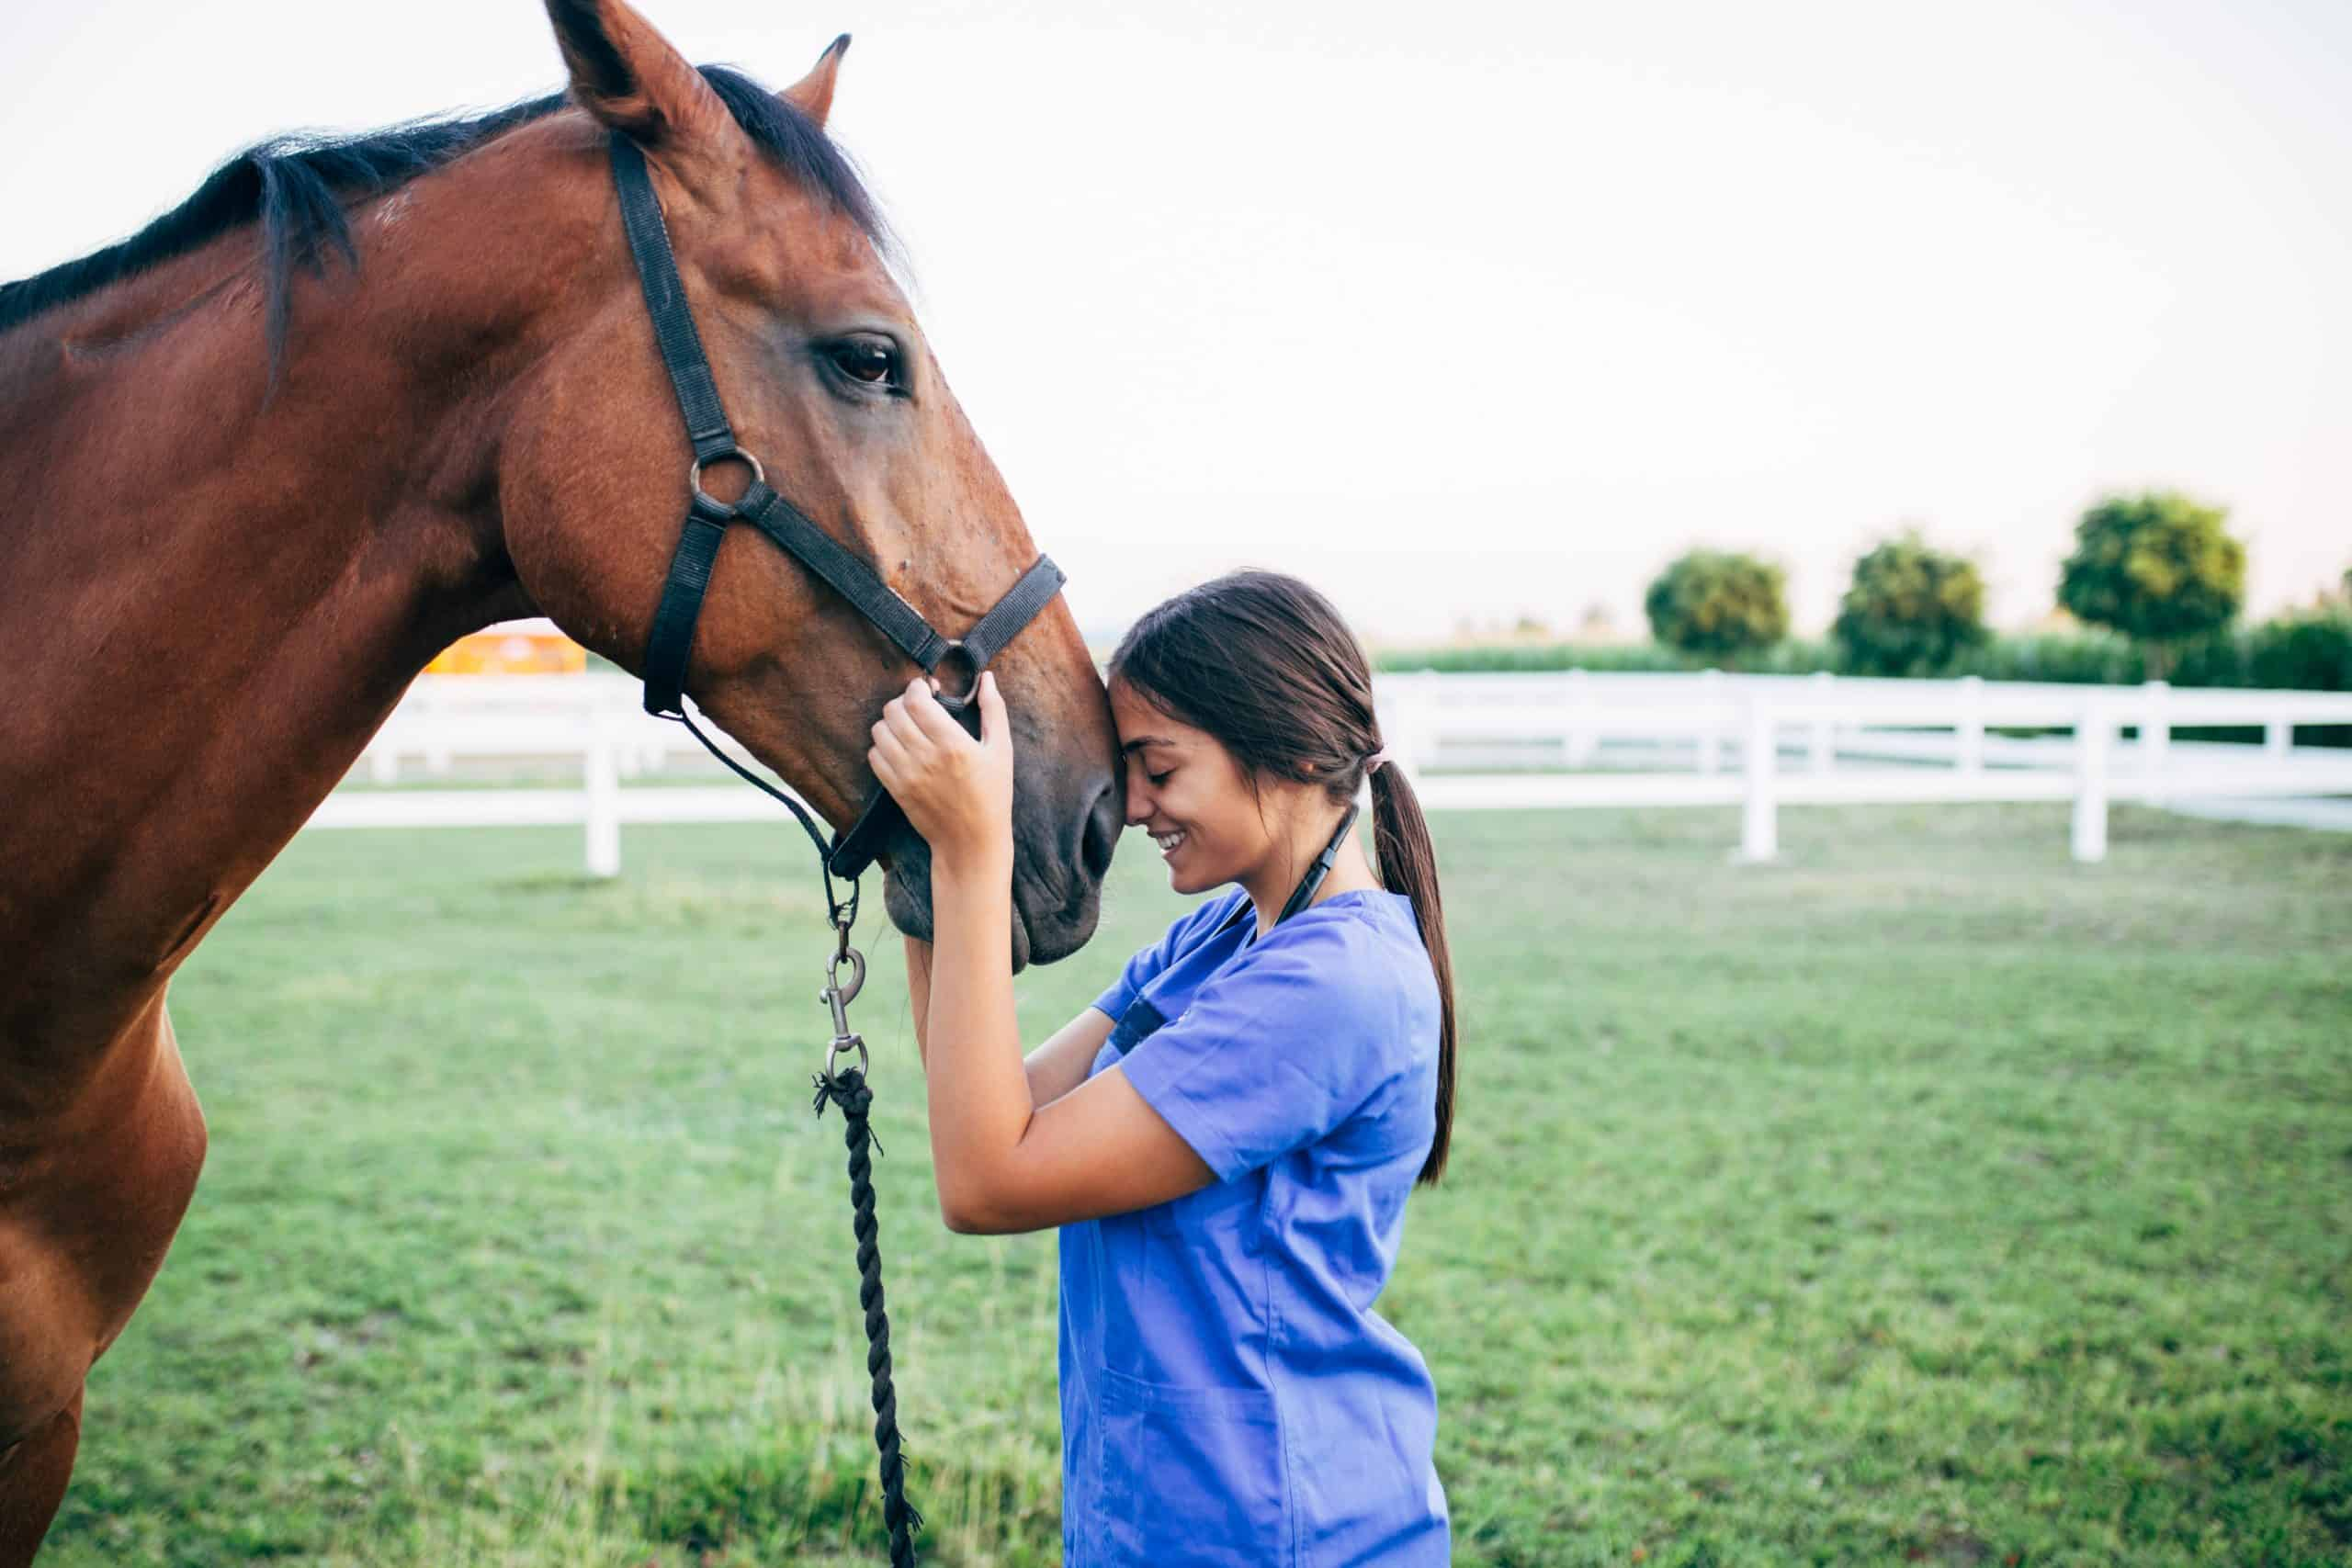 Vet enjoying with a horse outdoors at ranch.